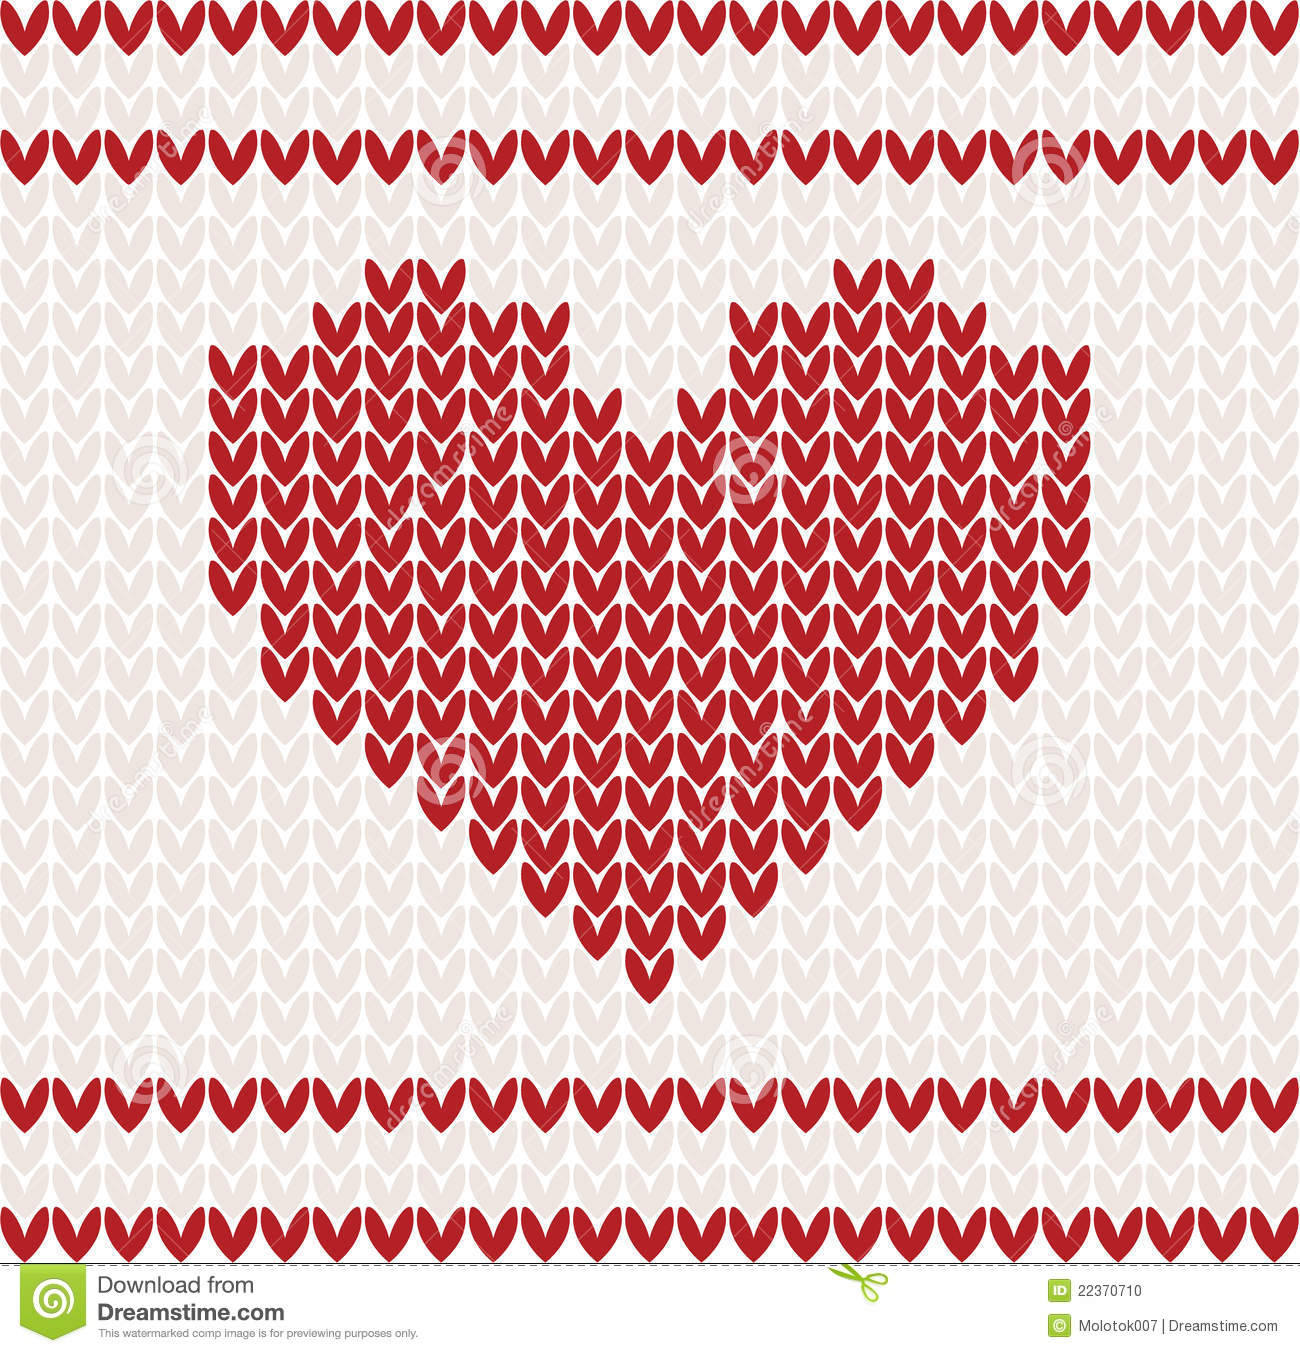 Knitting Pattern Vector Download : Knitted Vector With Heart Stock Photo - Image: 22370710